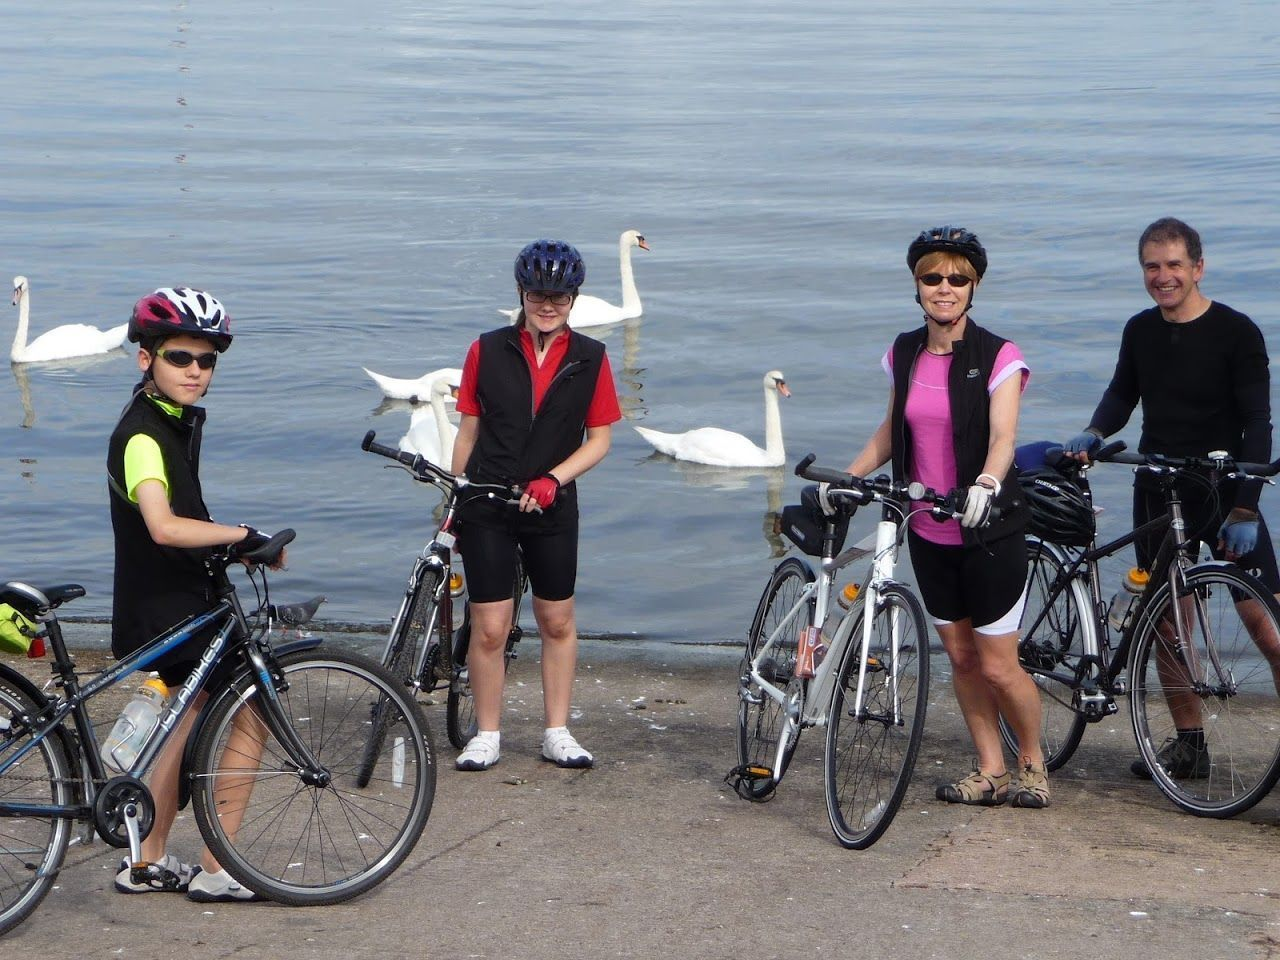 _Holiday.543.4862.jpg - UK - C2C - Coast to Coast 5 Days Cycling - Self-Guided Family Cycling Holiday - Family Cycling